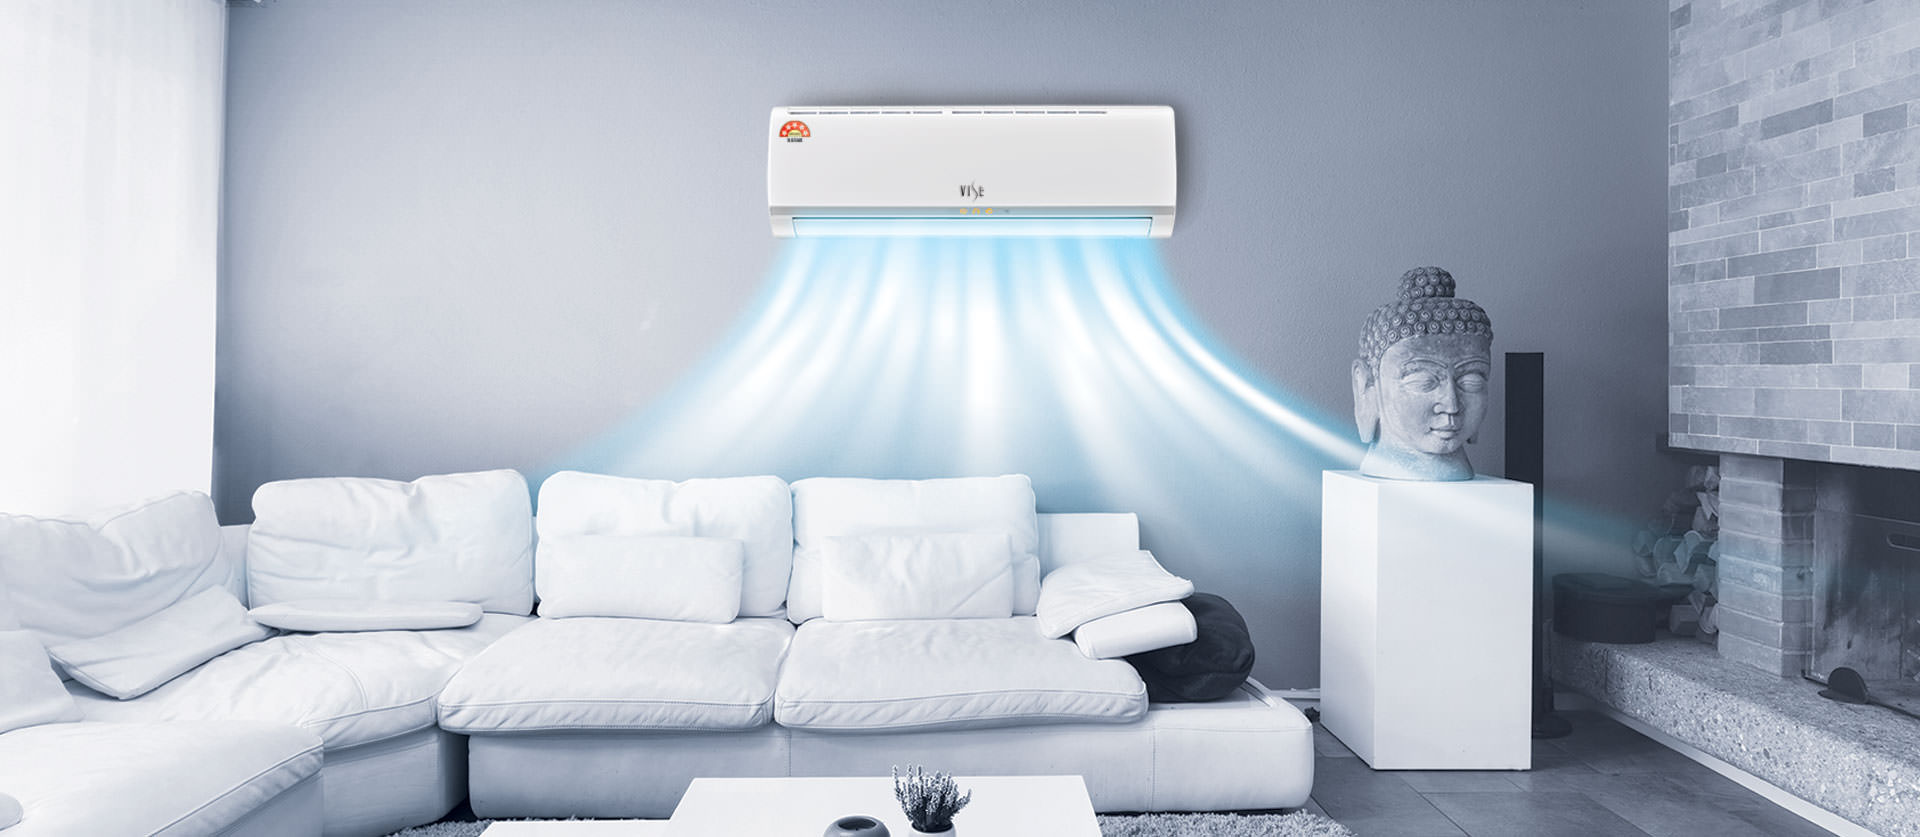 Air Conditioner that teams up as Air Purifiers too. - Acservicewala - Trusted Ac service